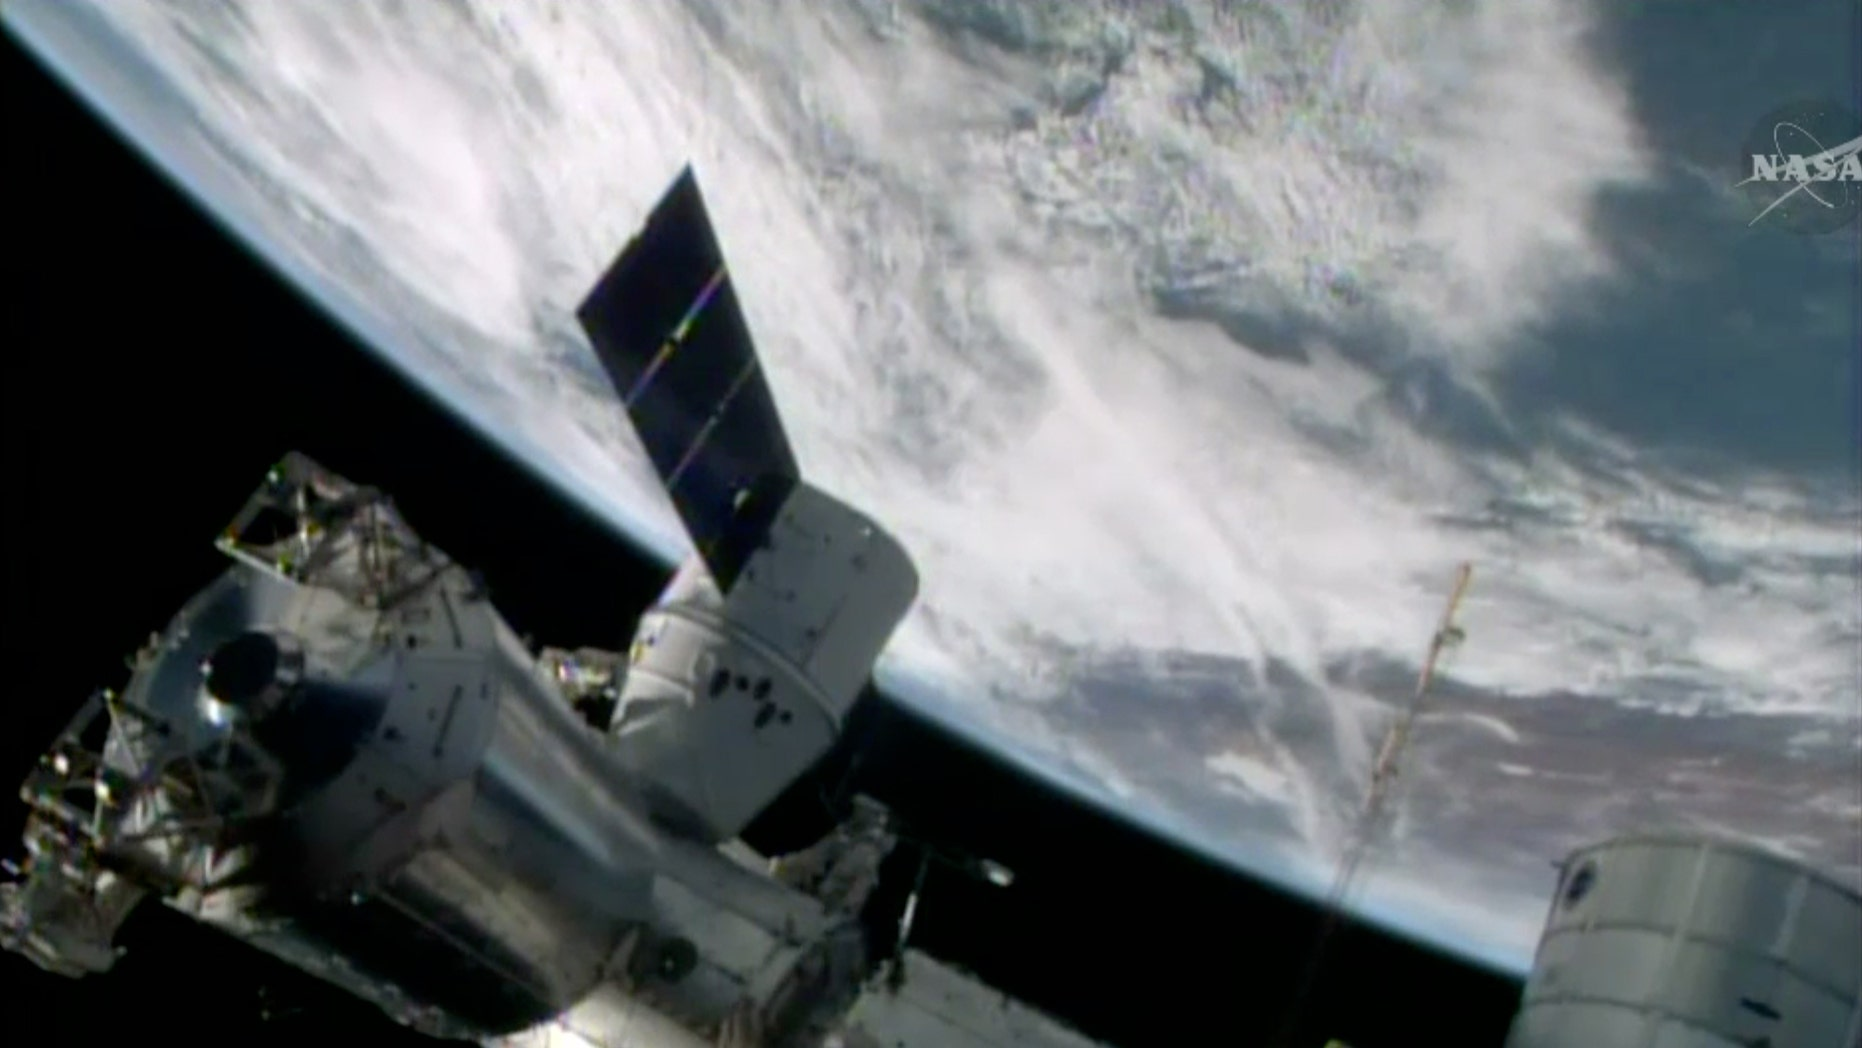 FILE- In this April 20, 2014, image made from a frame grabbed from NASA-TV, the SpaceX Dragon resupply capsule begins the process of being berthed on to the ISS.